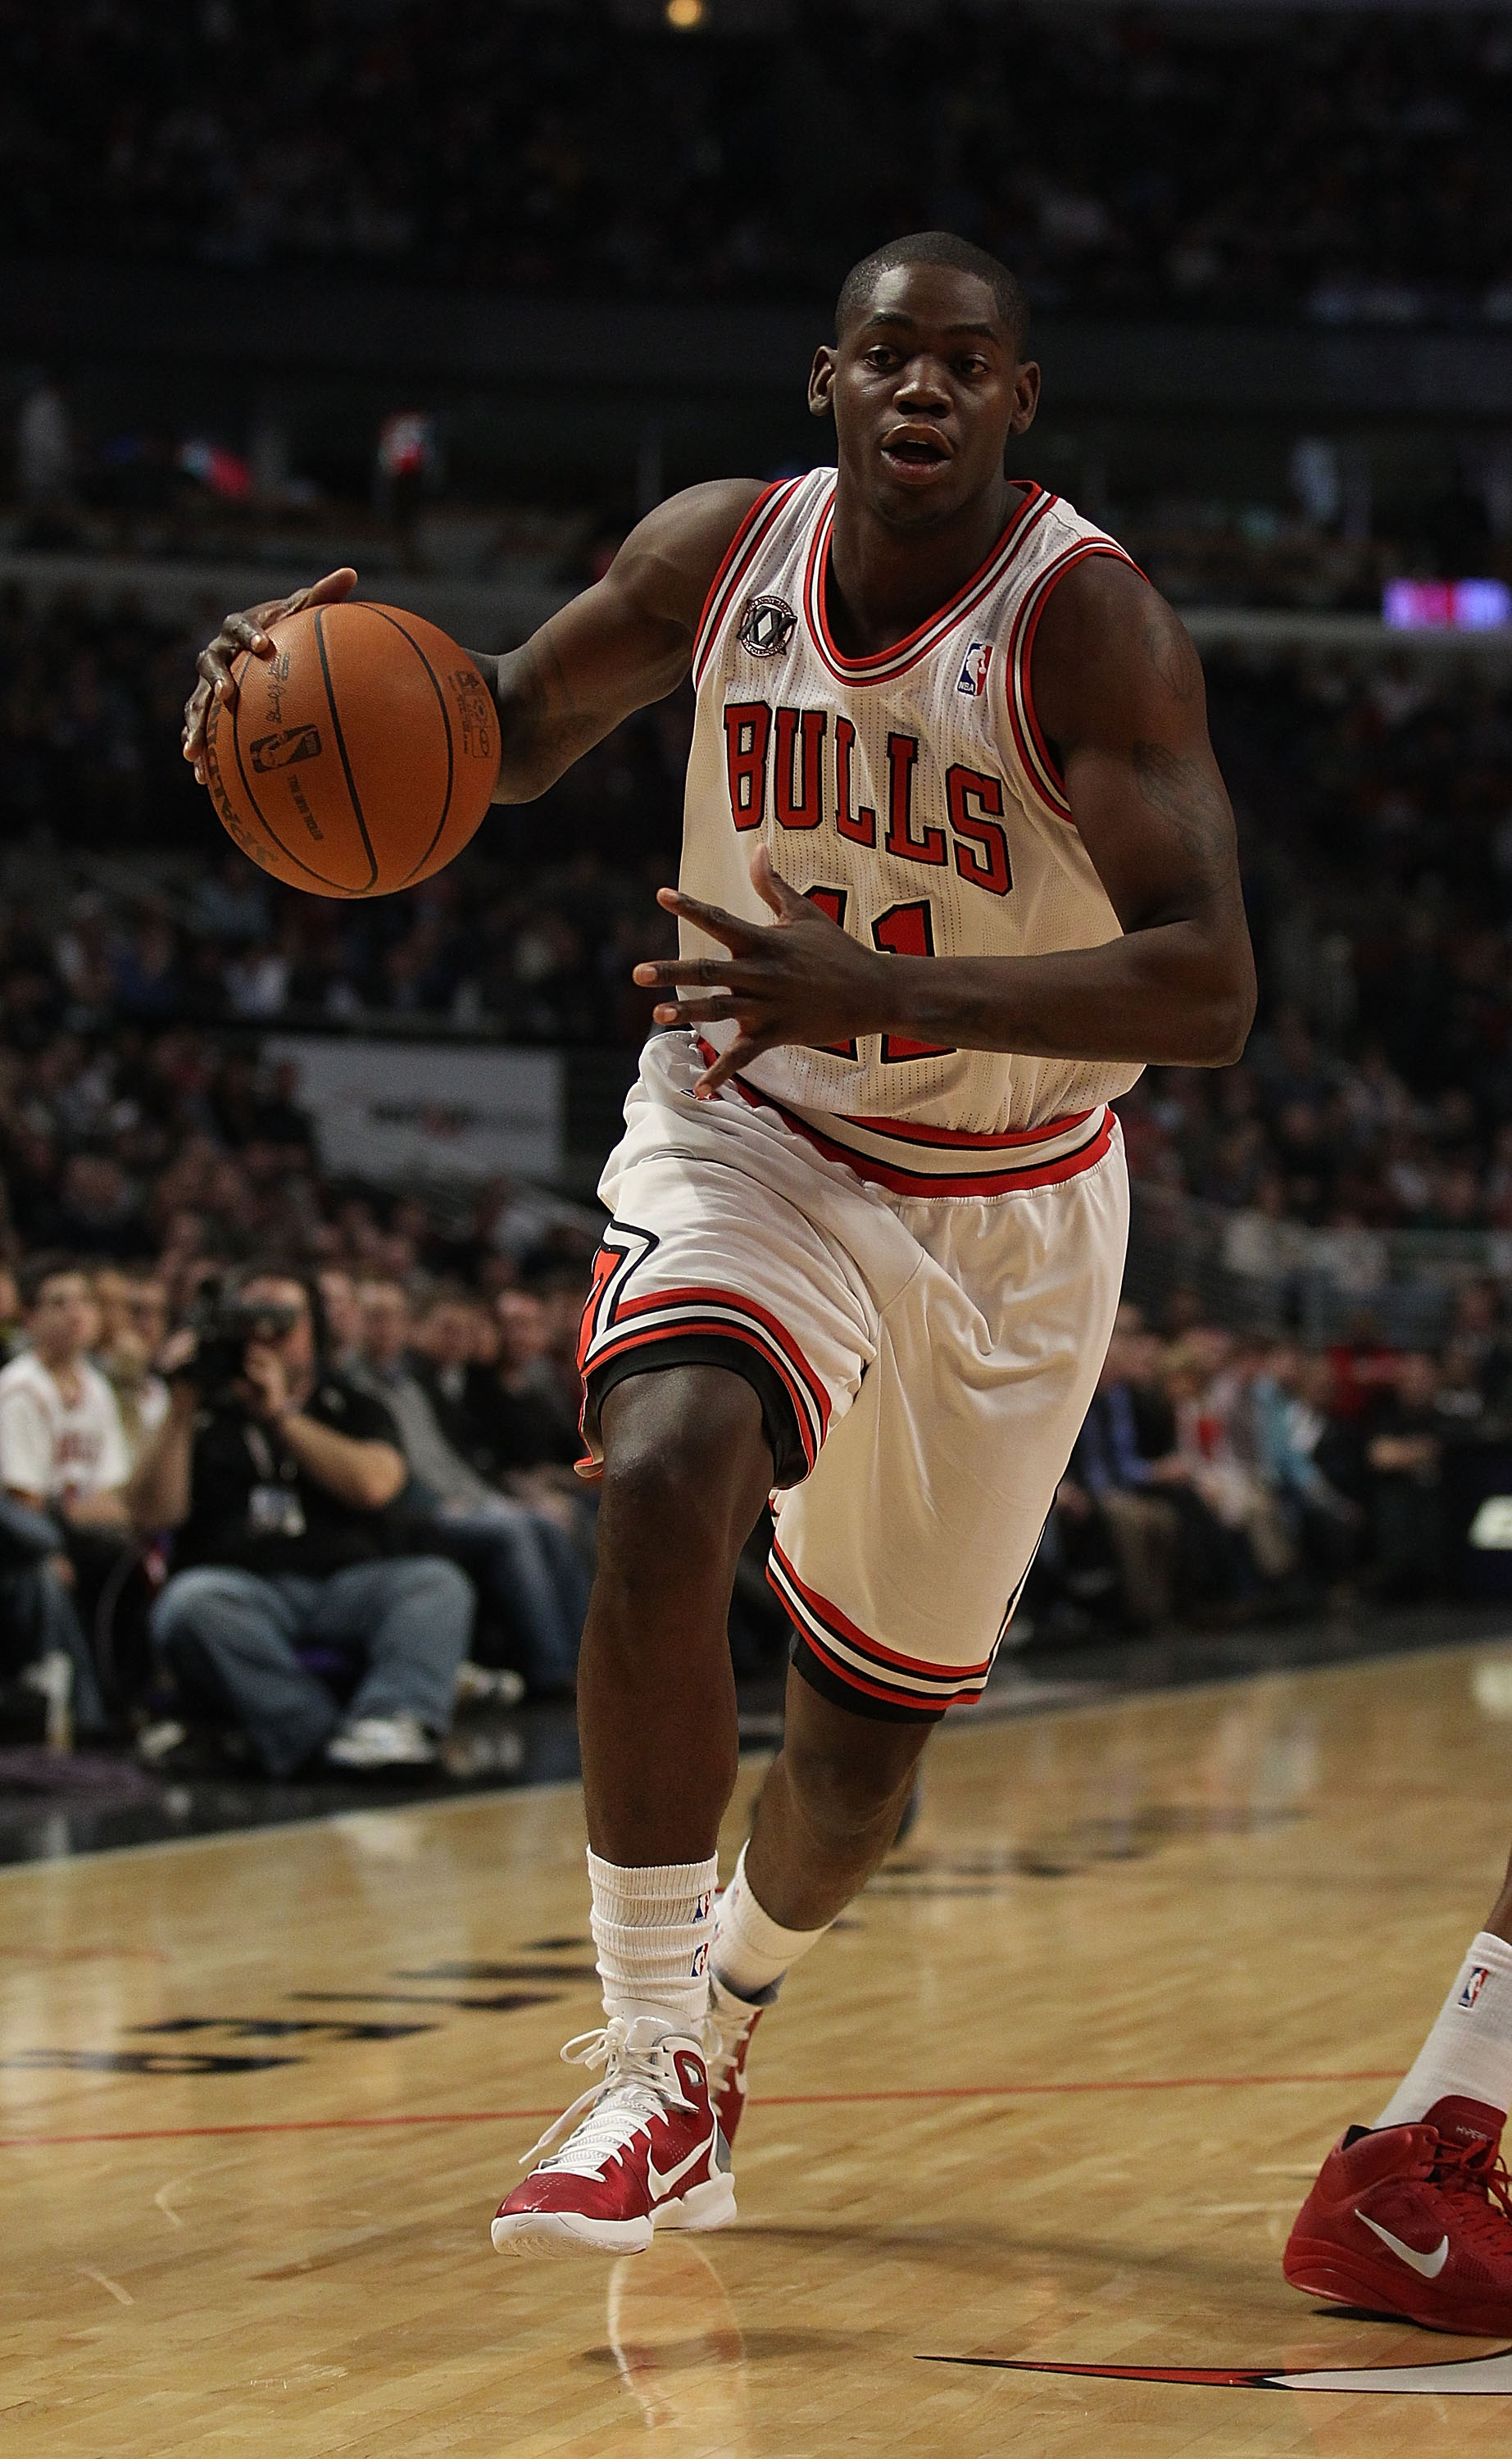 CHICAGO, IL - DECEMBER 28: Ronnie Brewer #11 of the Chicago Bulls dribbles against the Milwaukee Bucks at the United Center on December 28, 2010 in Chicago, Illinois. The Bulls defeated the Bucks 90-77. NOTE TO USER: User expressly acknowledges and agrees